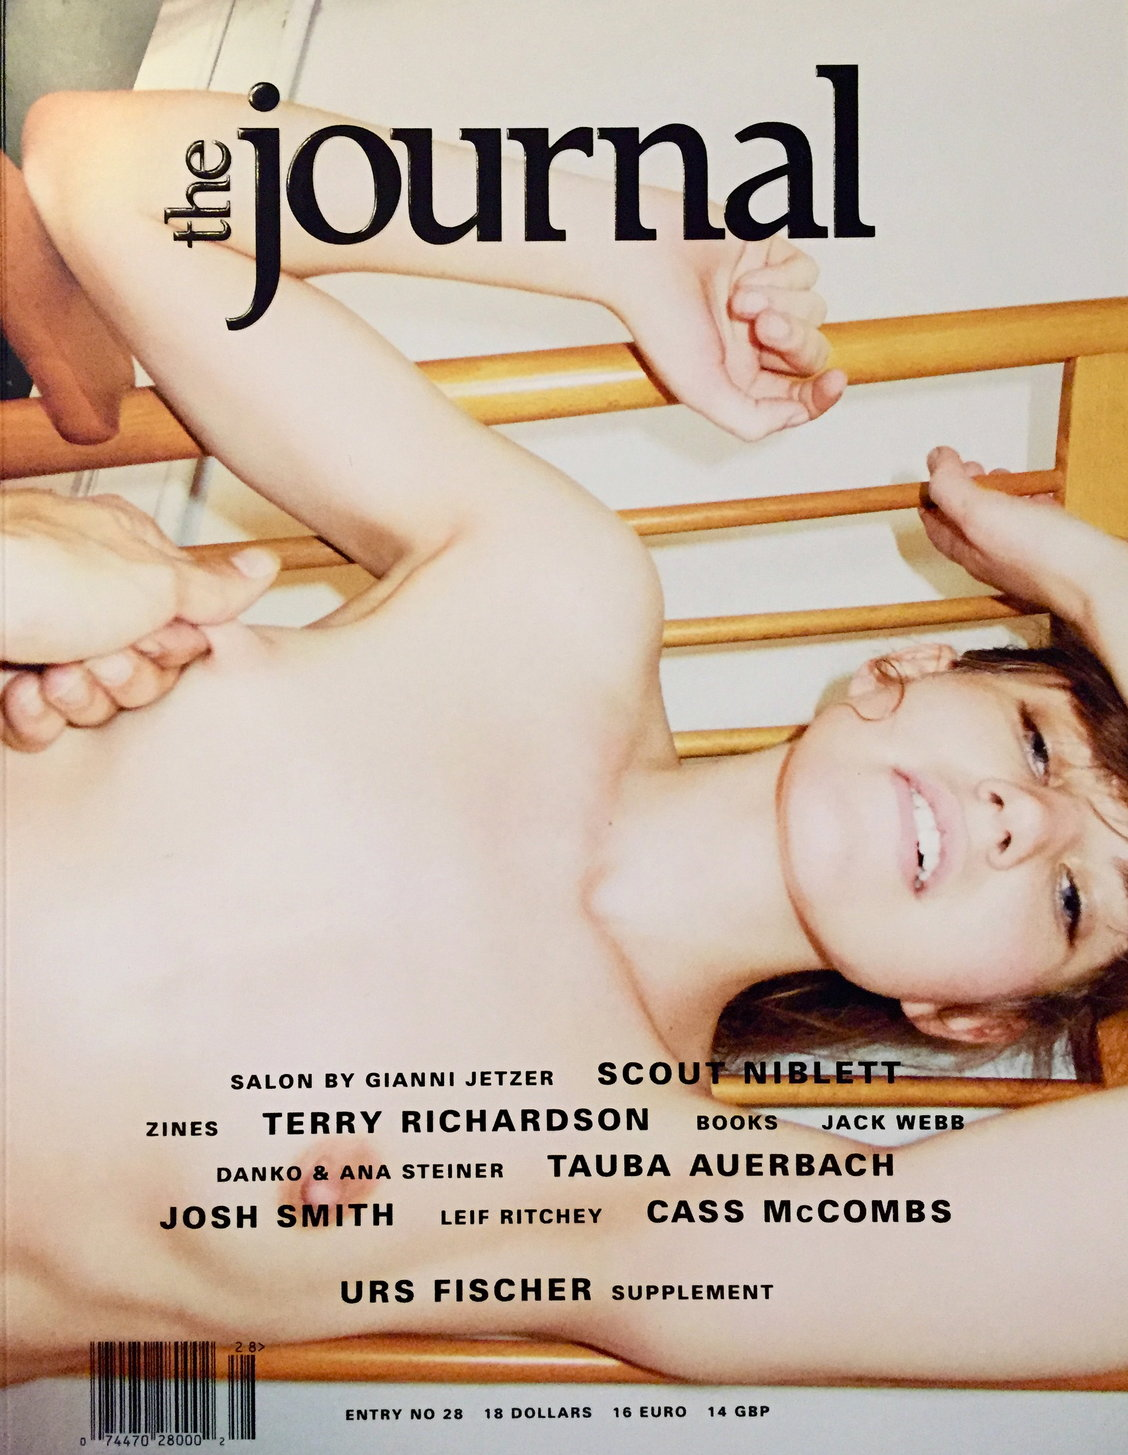 THE JOURNAL 2010